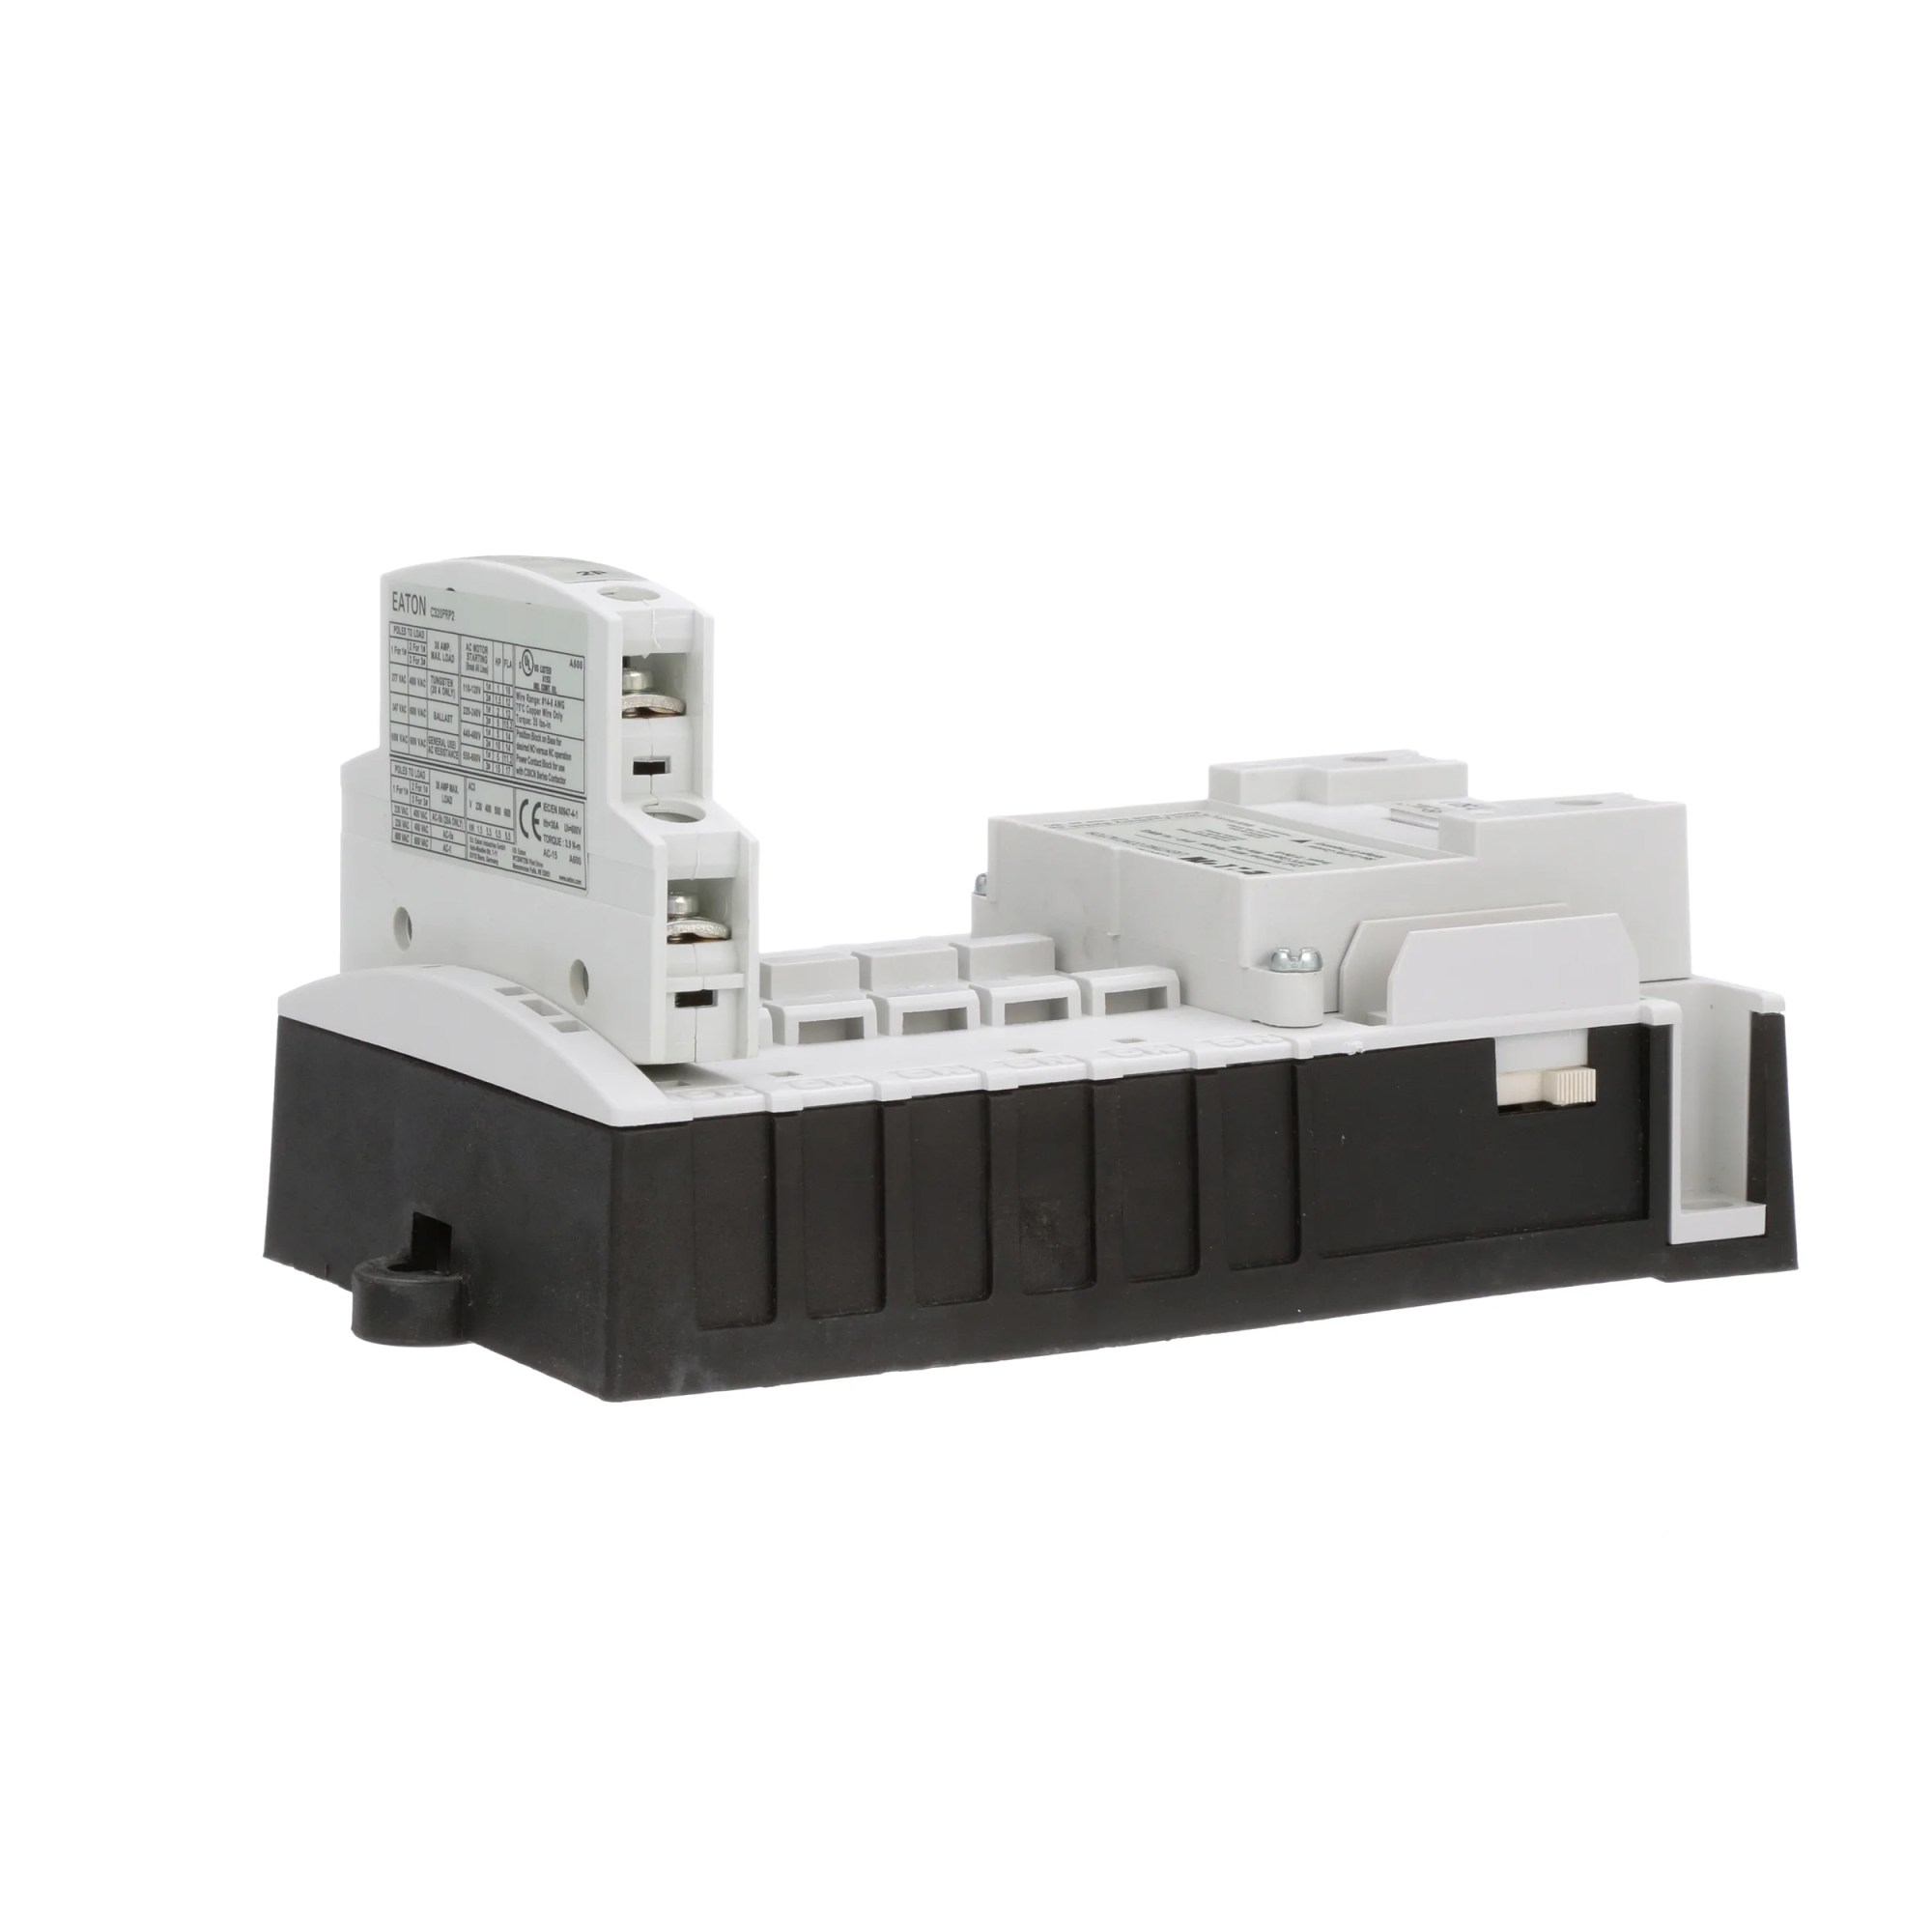 hight resolution of eaton cutler hammer c30cne20a0 lighting contactor open electrically held 2no 120v ac coil allied electronics automation